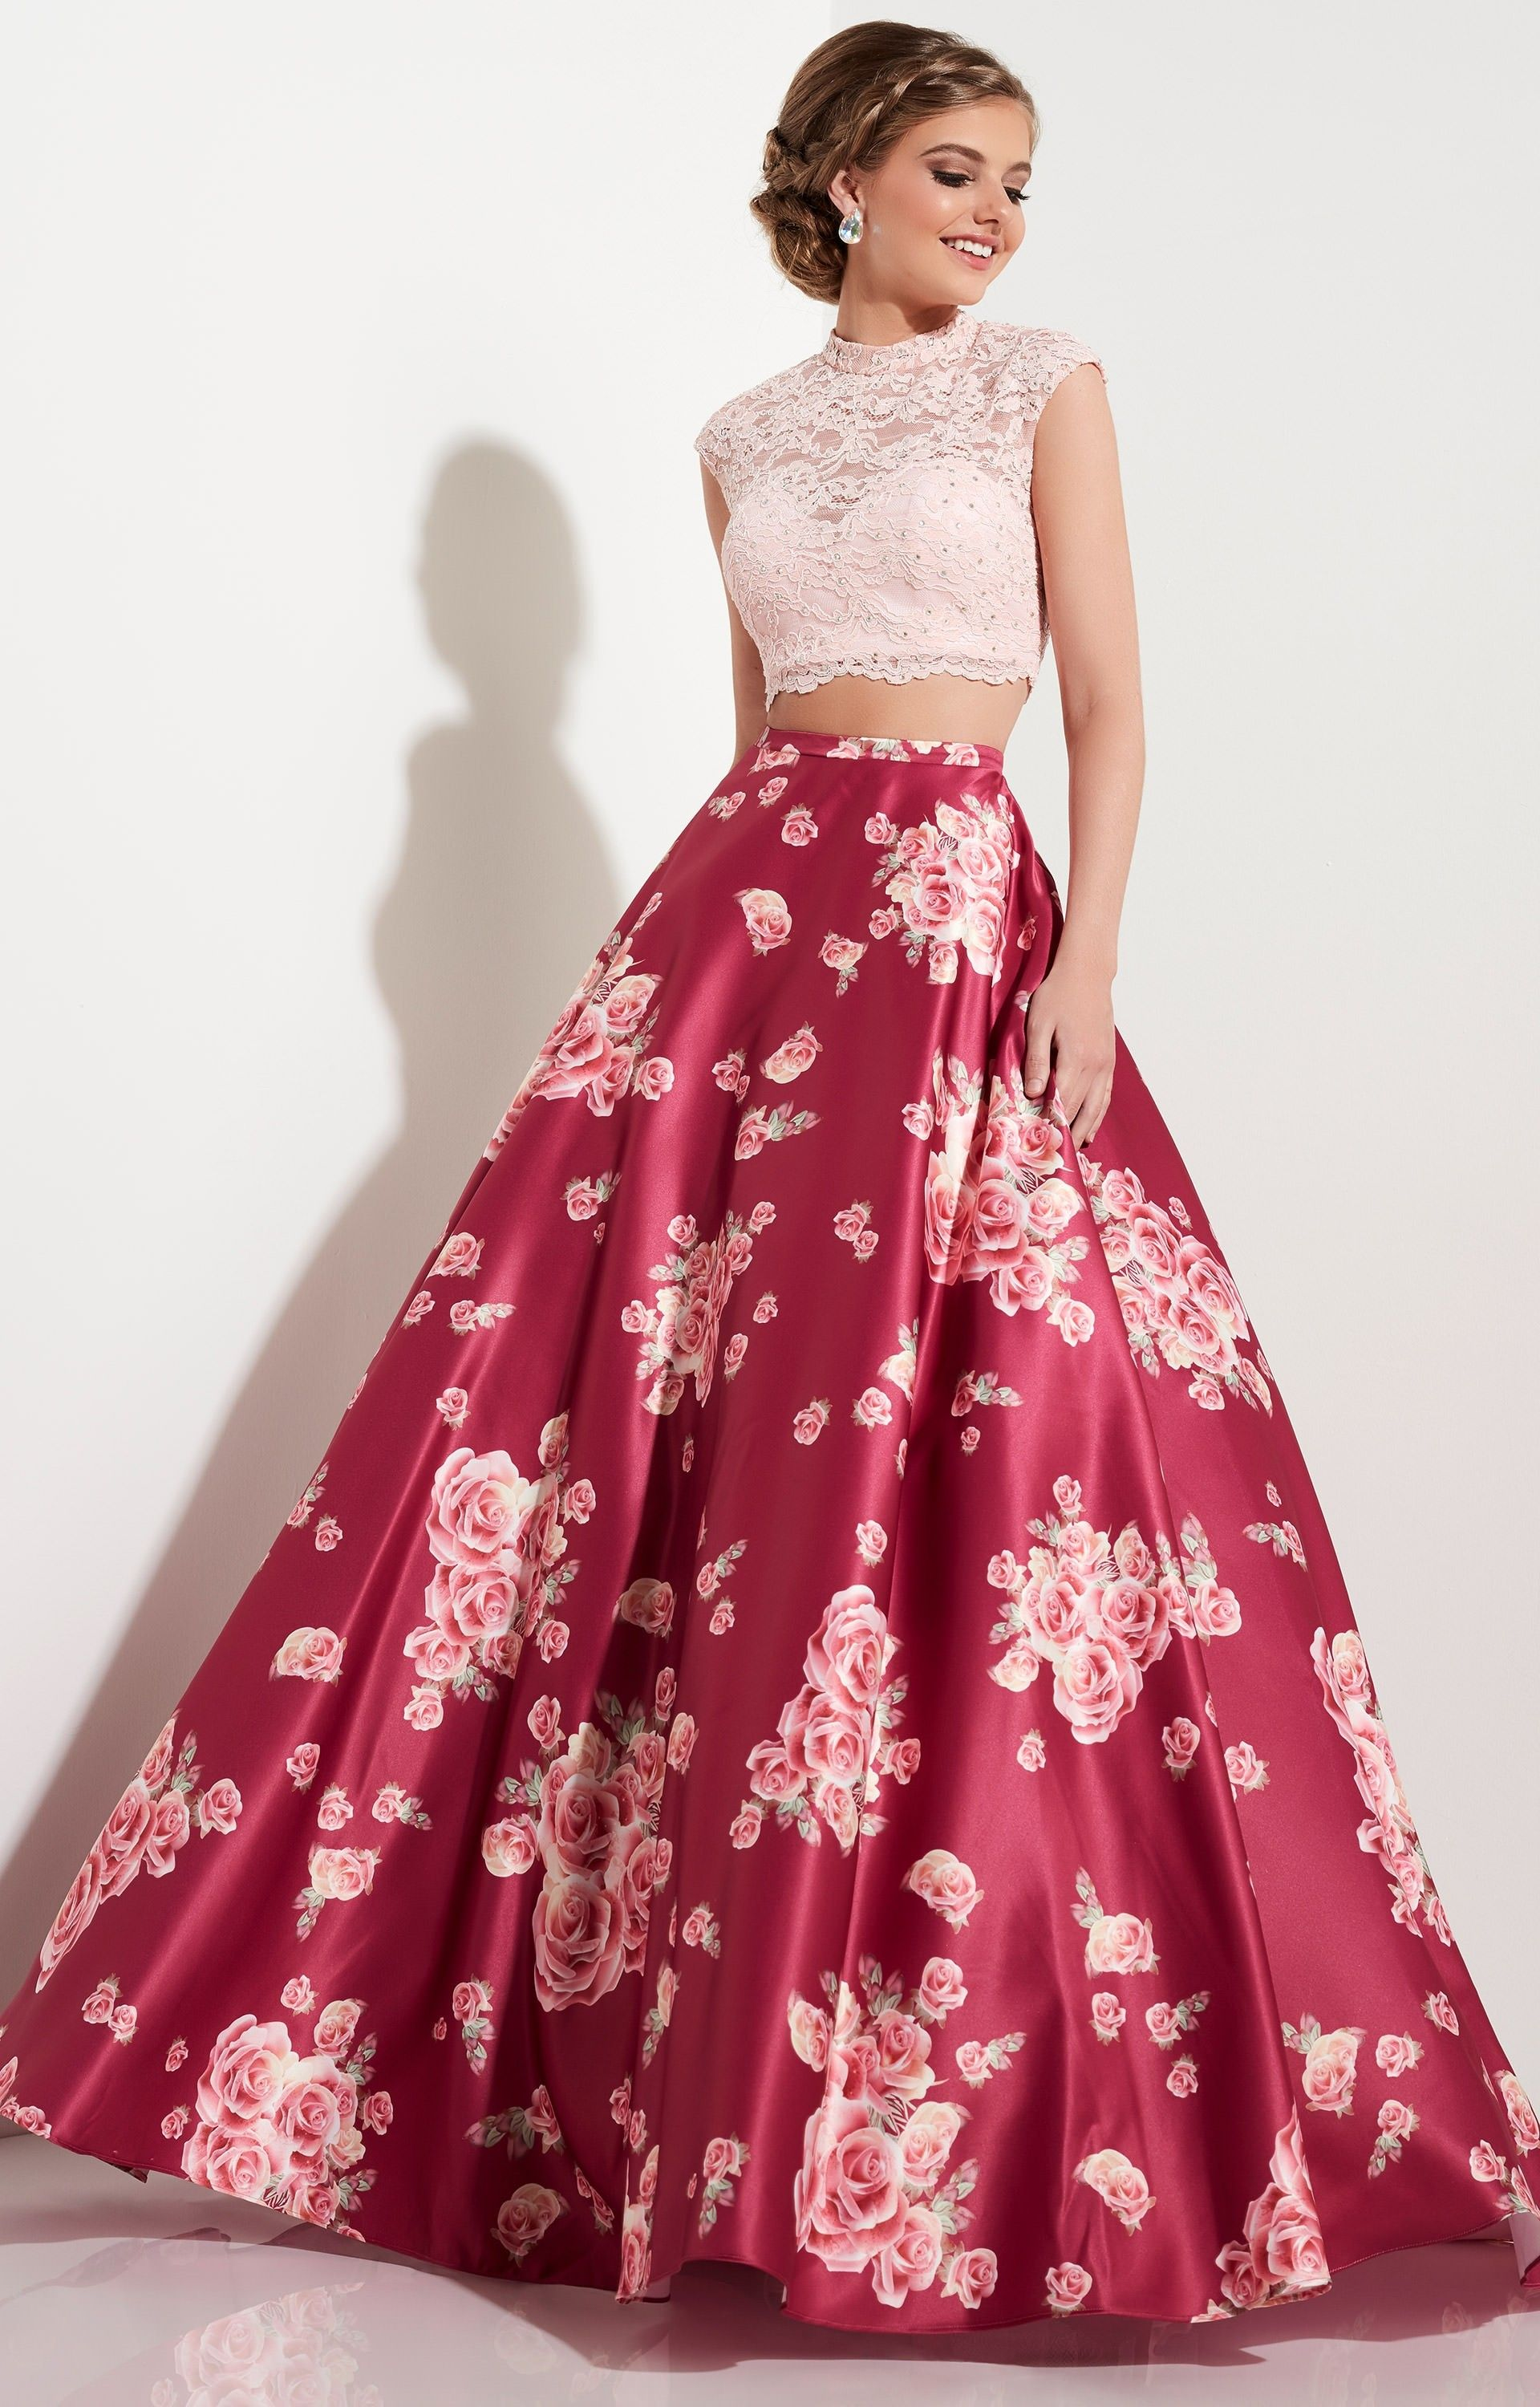 Rose wine studio piece ball gowns cap sleeves long lace